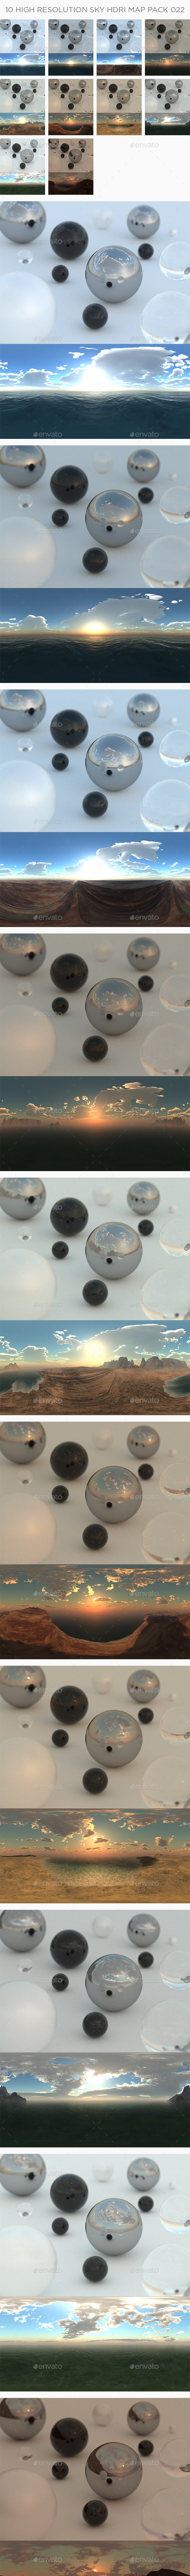 10 High Resolution Sky HDRi Maps Pack 022 - 3DOcean Item for Sale